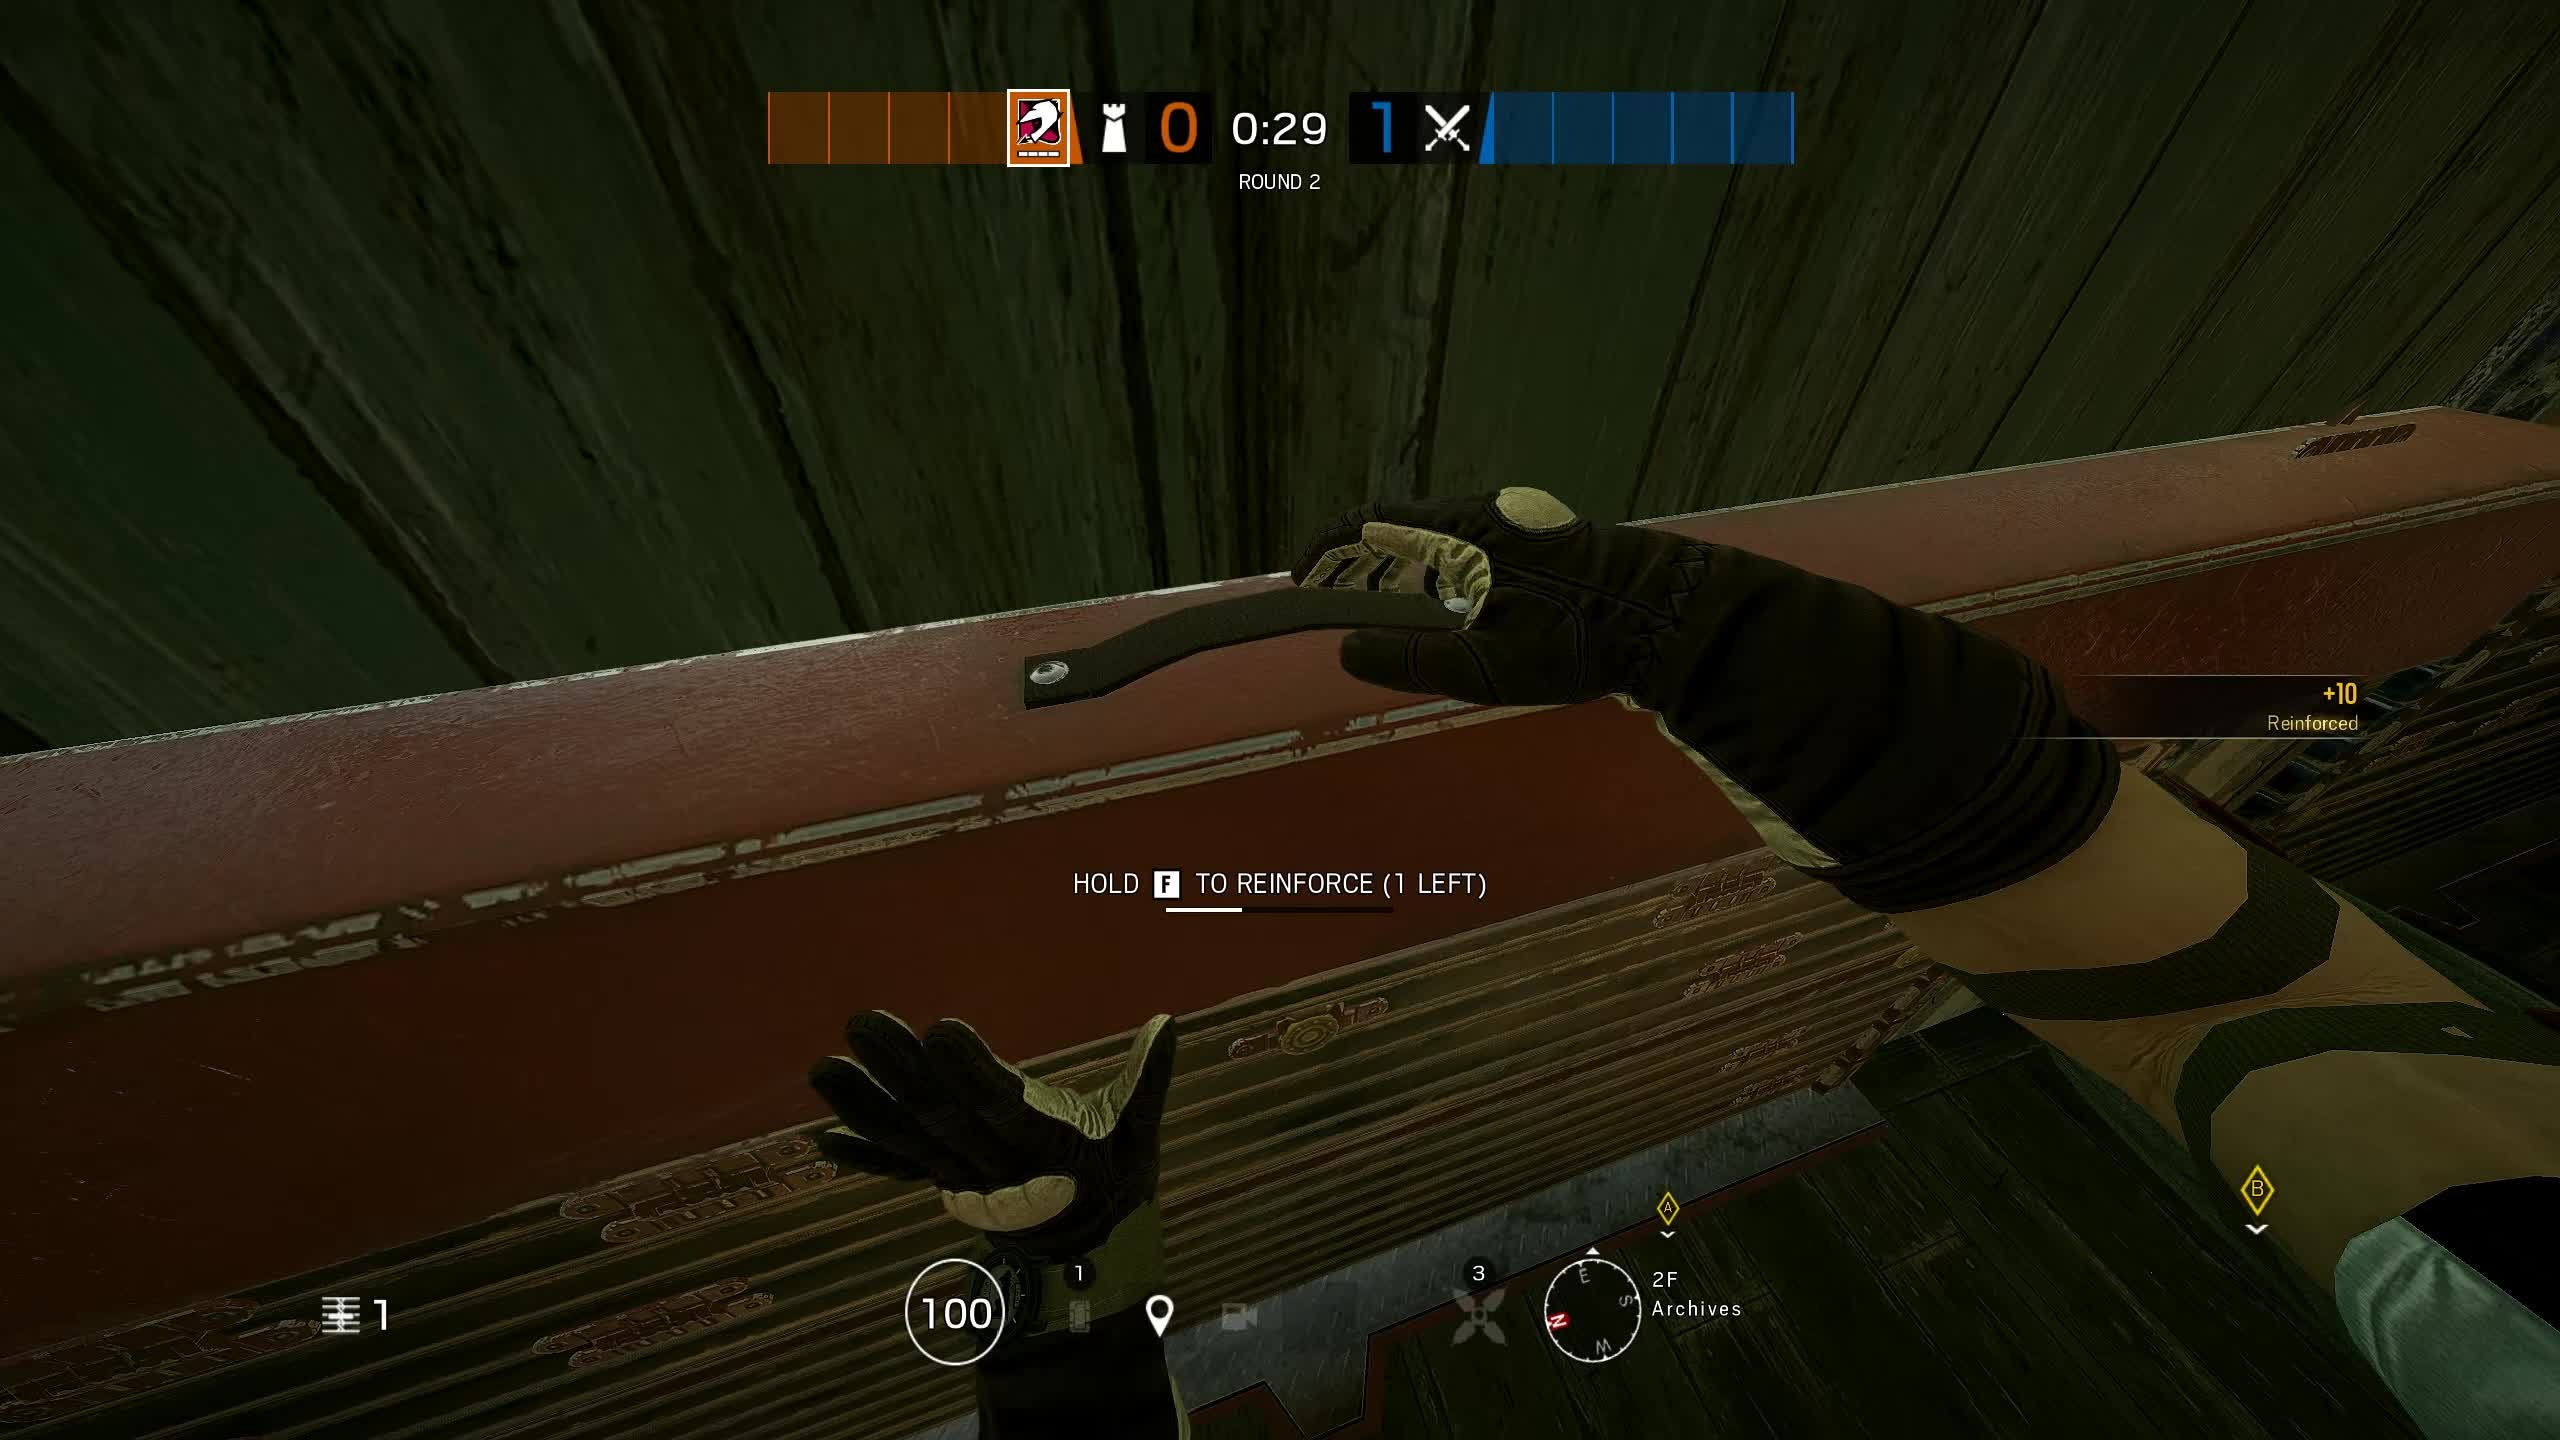 Rainbow Six: Guides - Guide to Playing Mozzie on Border video cover image 53